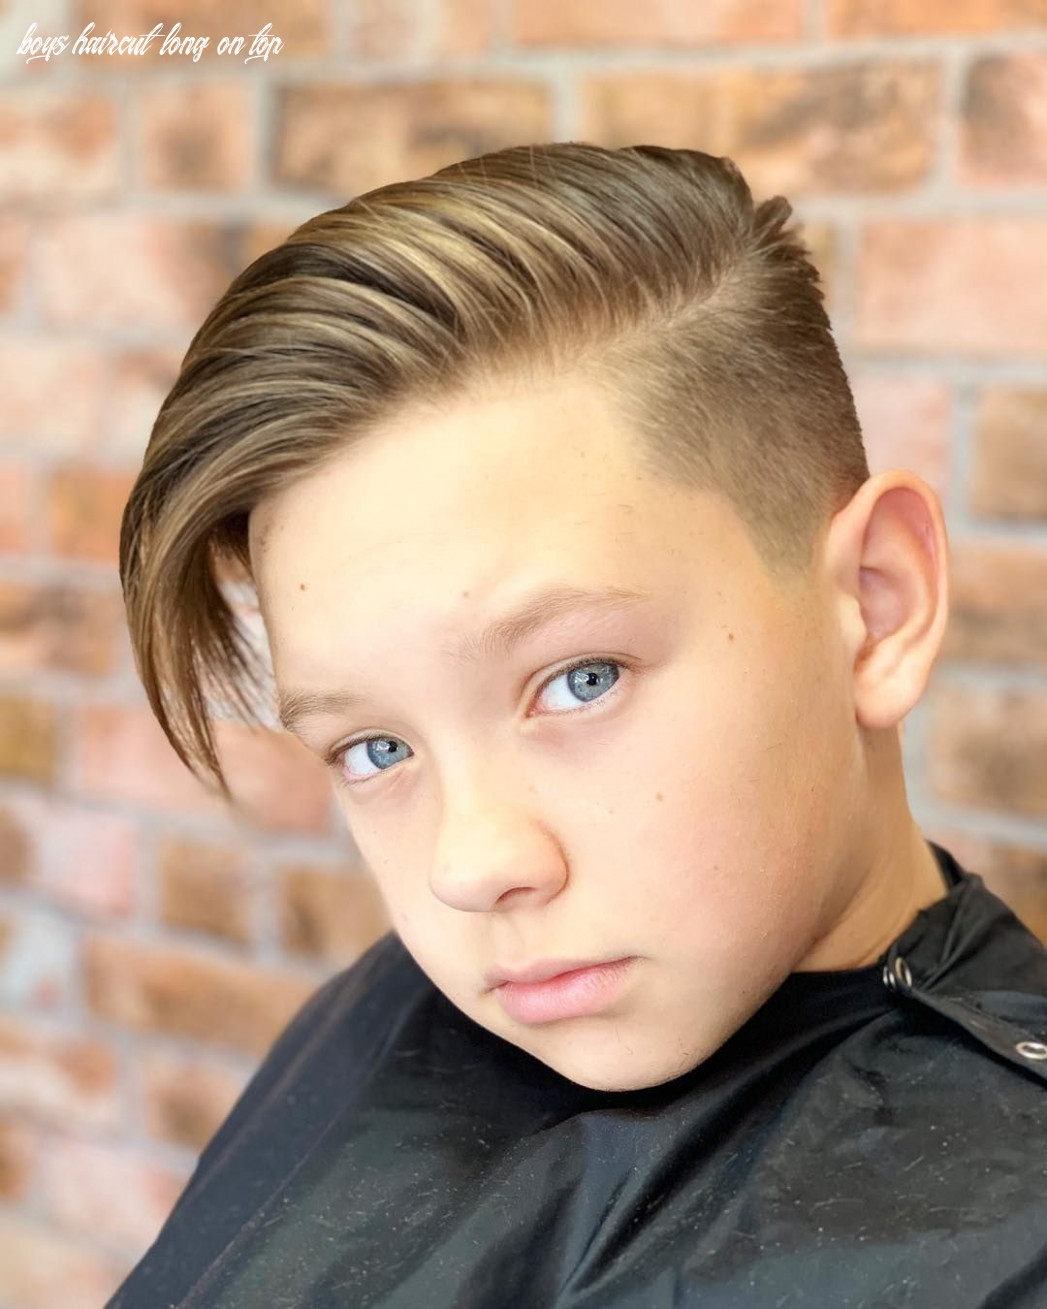 Pin on young person hairstyle boys haircut long on top